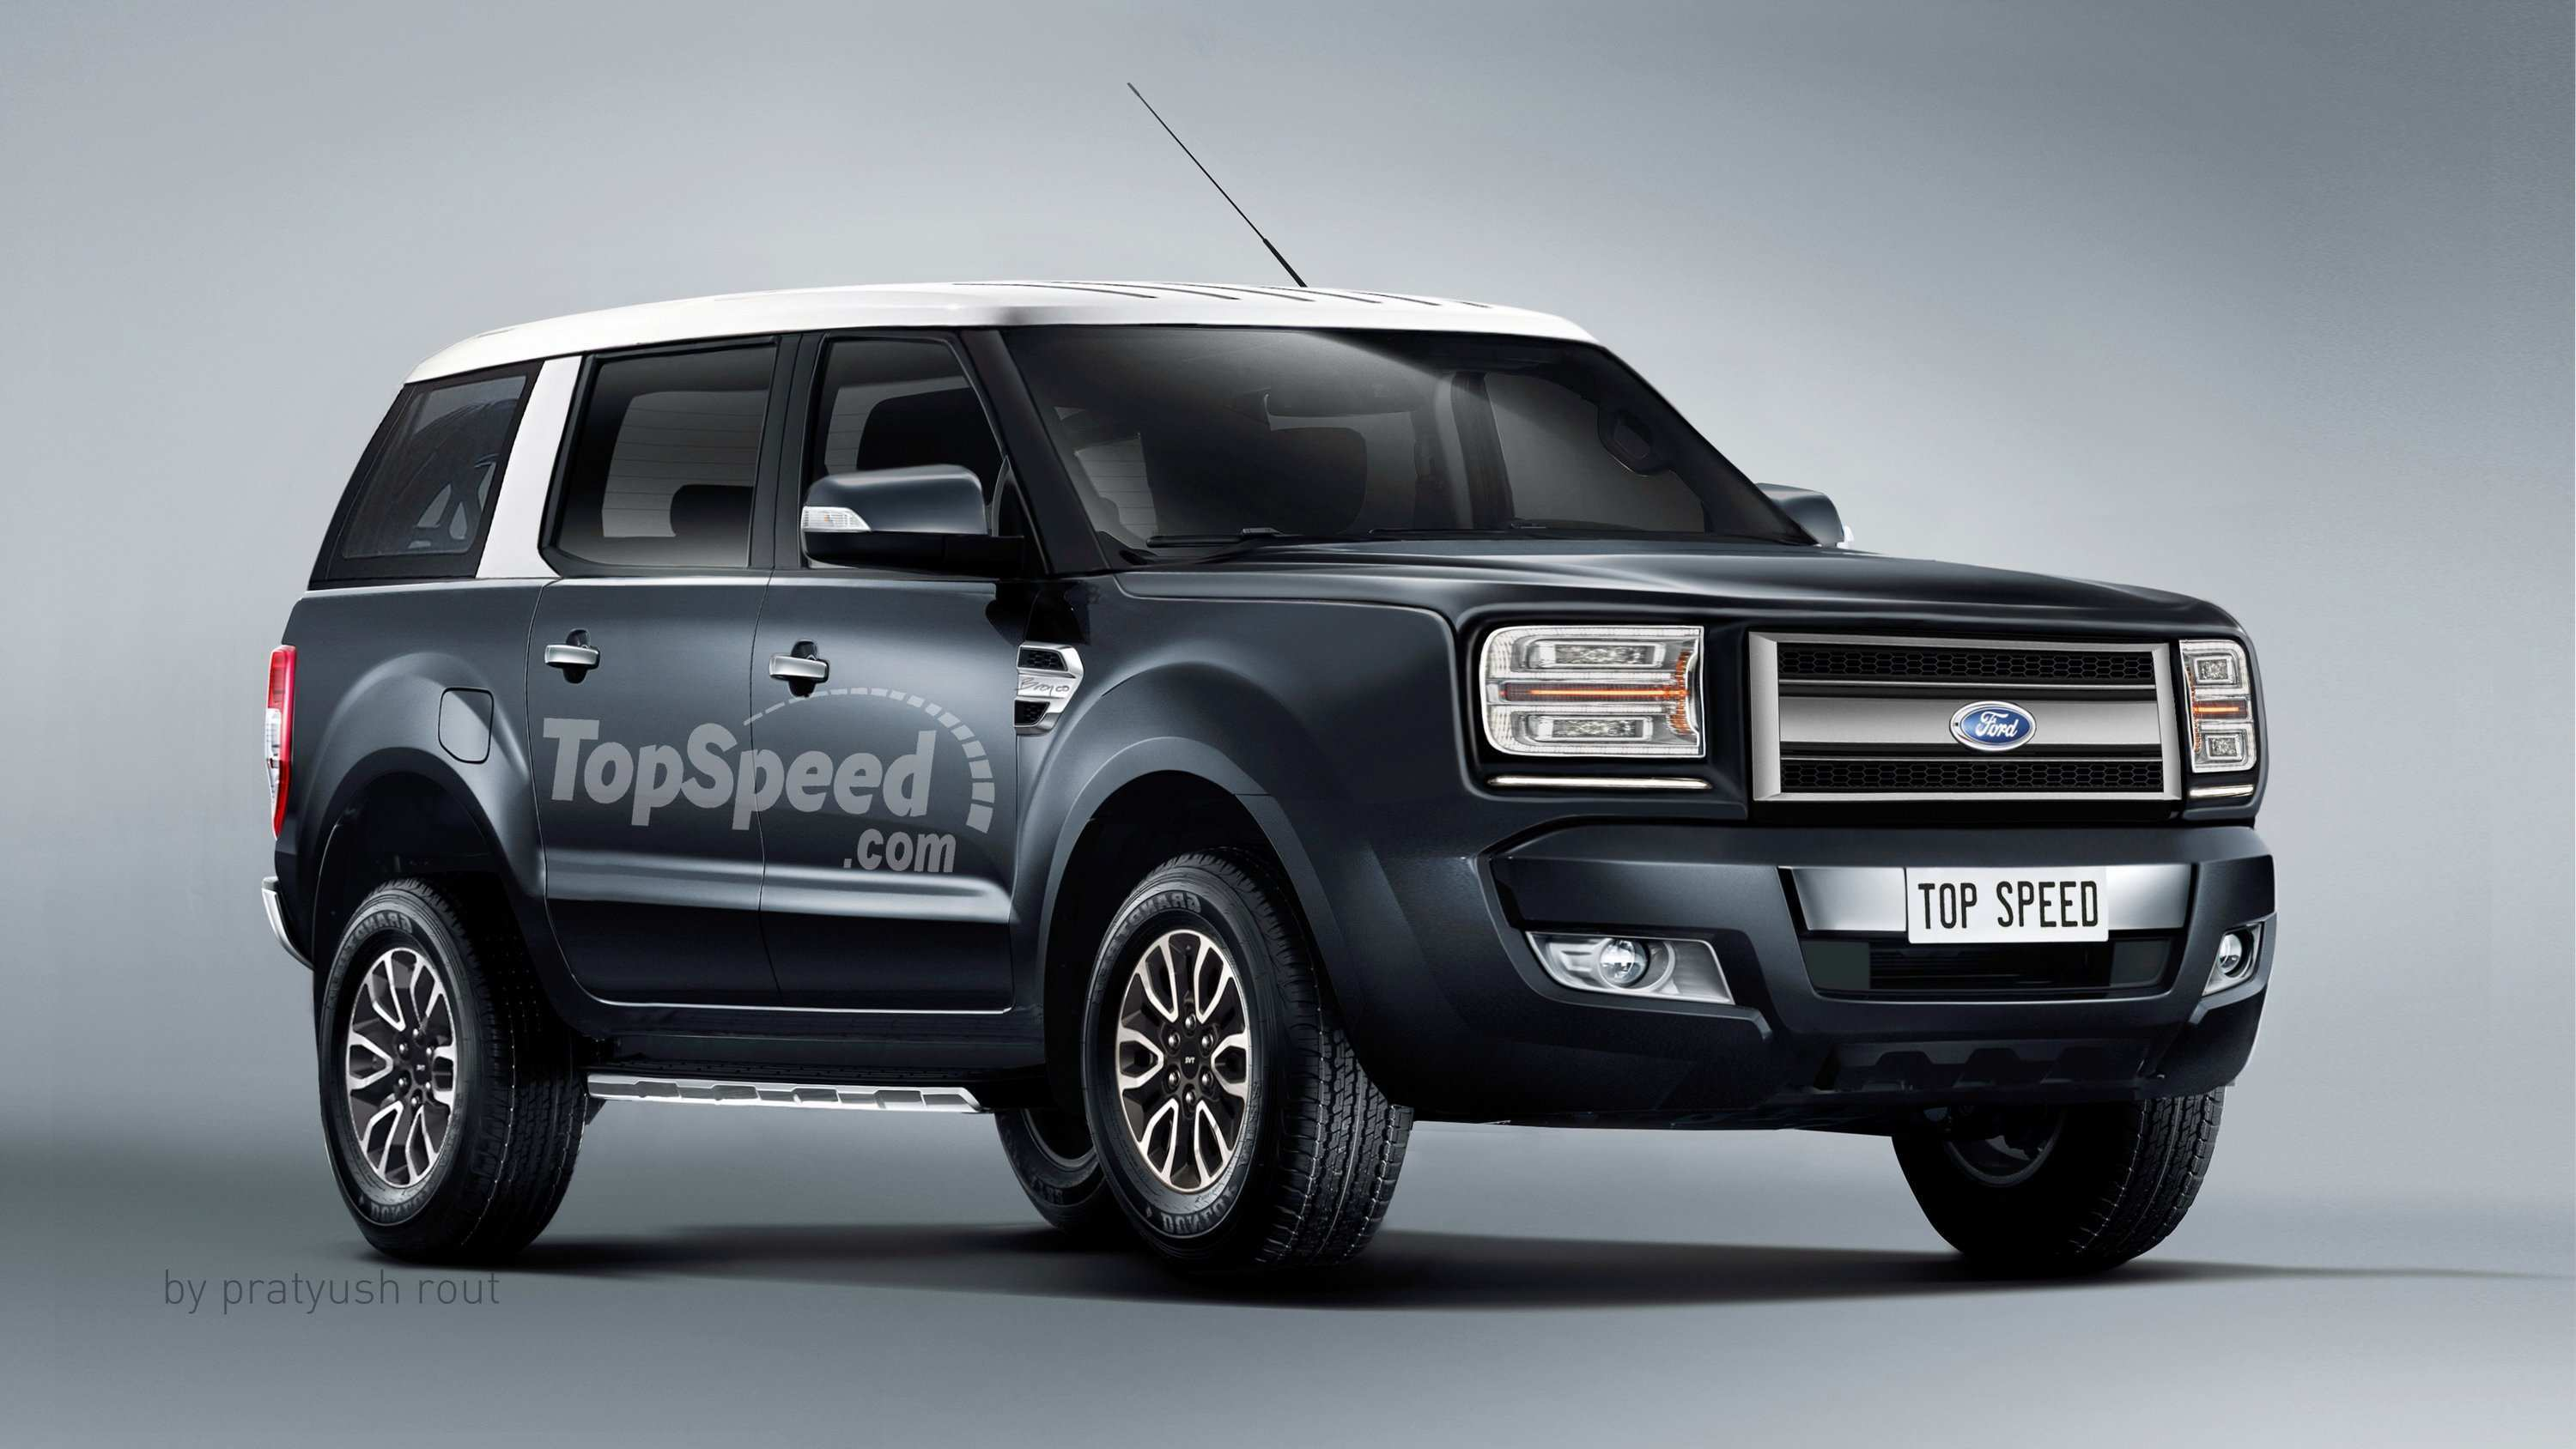 27 Concept of 2020 Bronco Pictures Rumors with 2020 Bronco Pictures